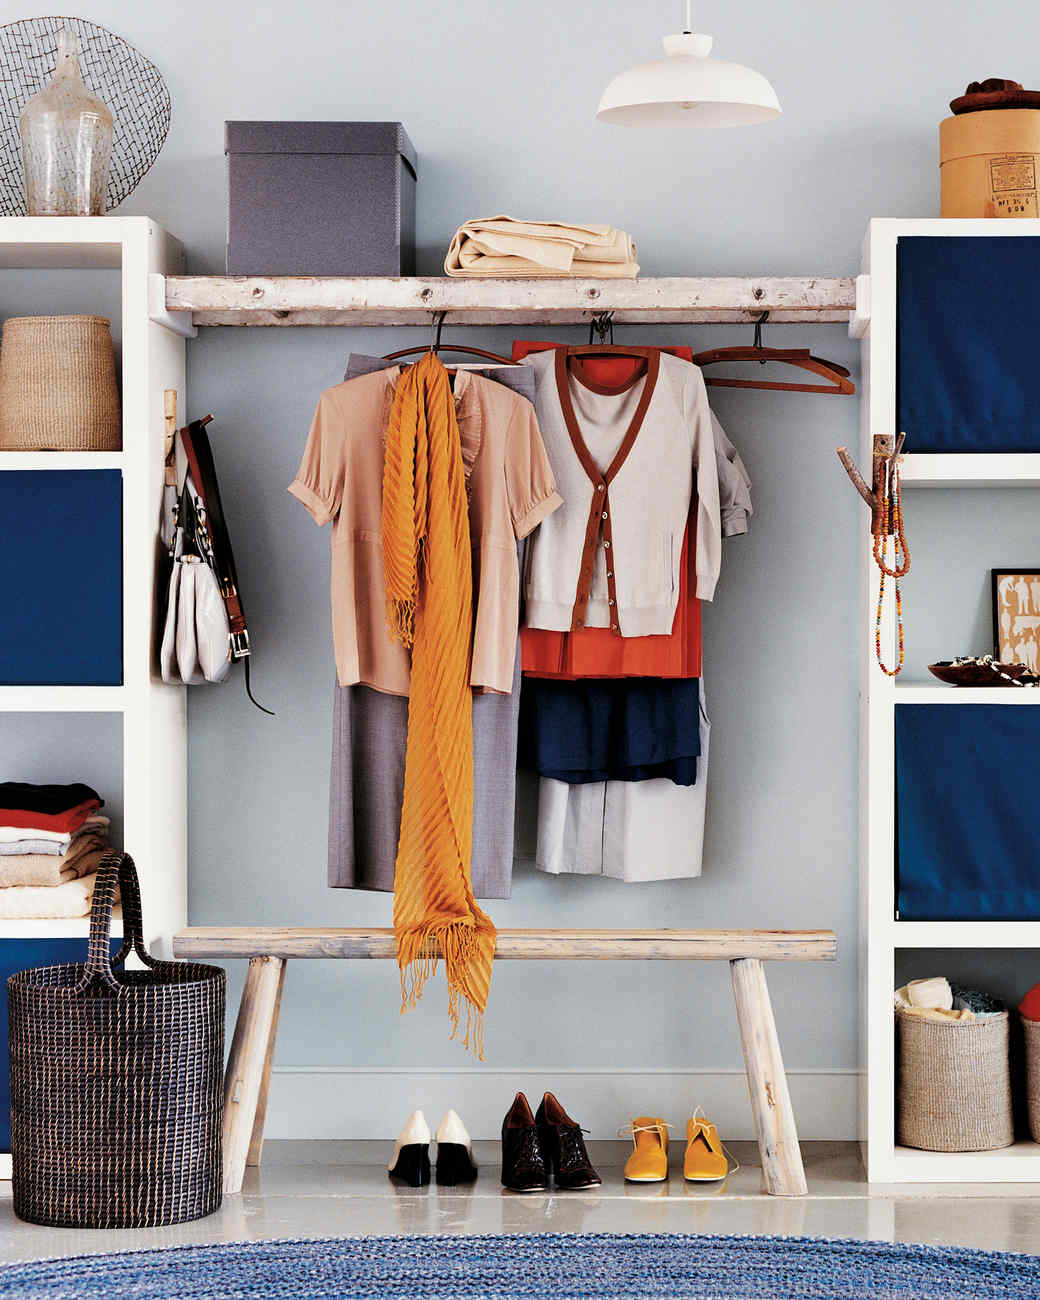 Inspiring Interior Storage Design Ideas with Diy Walk in Closet: Closet Building Materials | Diy Walk In Closet | California Closets Materials